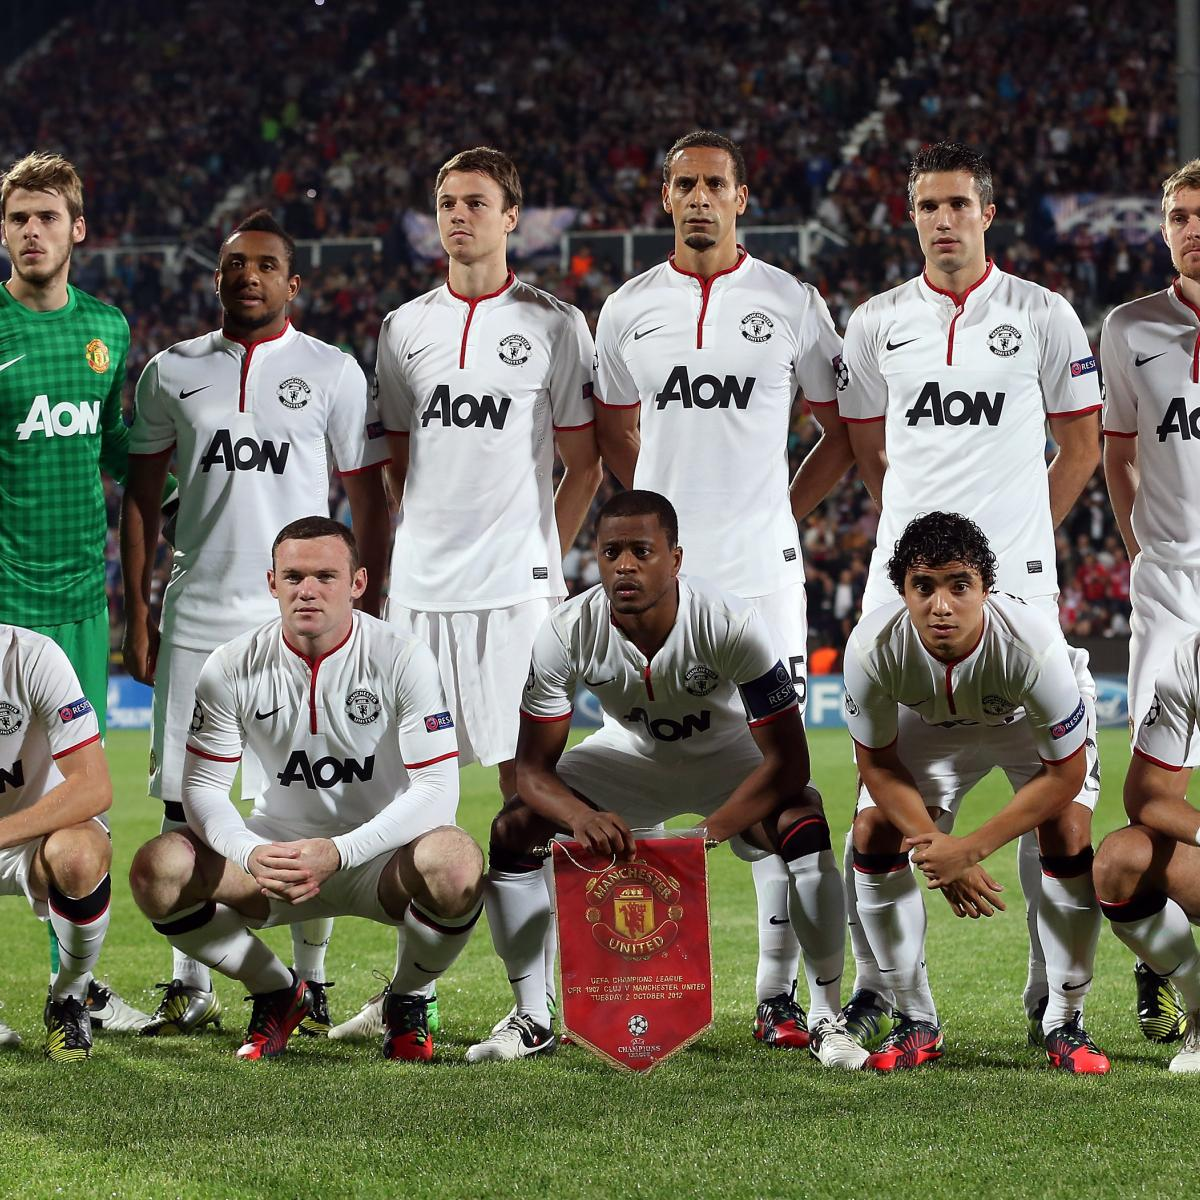 Cfr Cluj: CFR Cluj Vs. Manchester United: 6 Things To Ponder In The